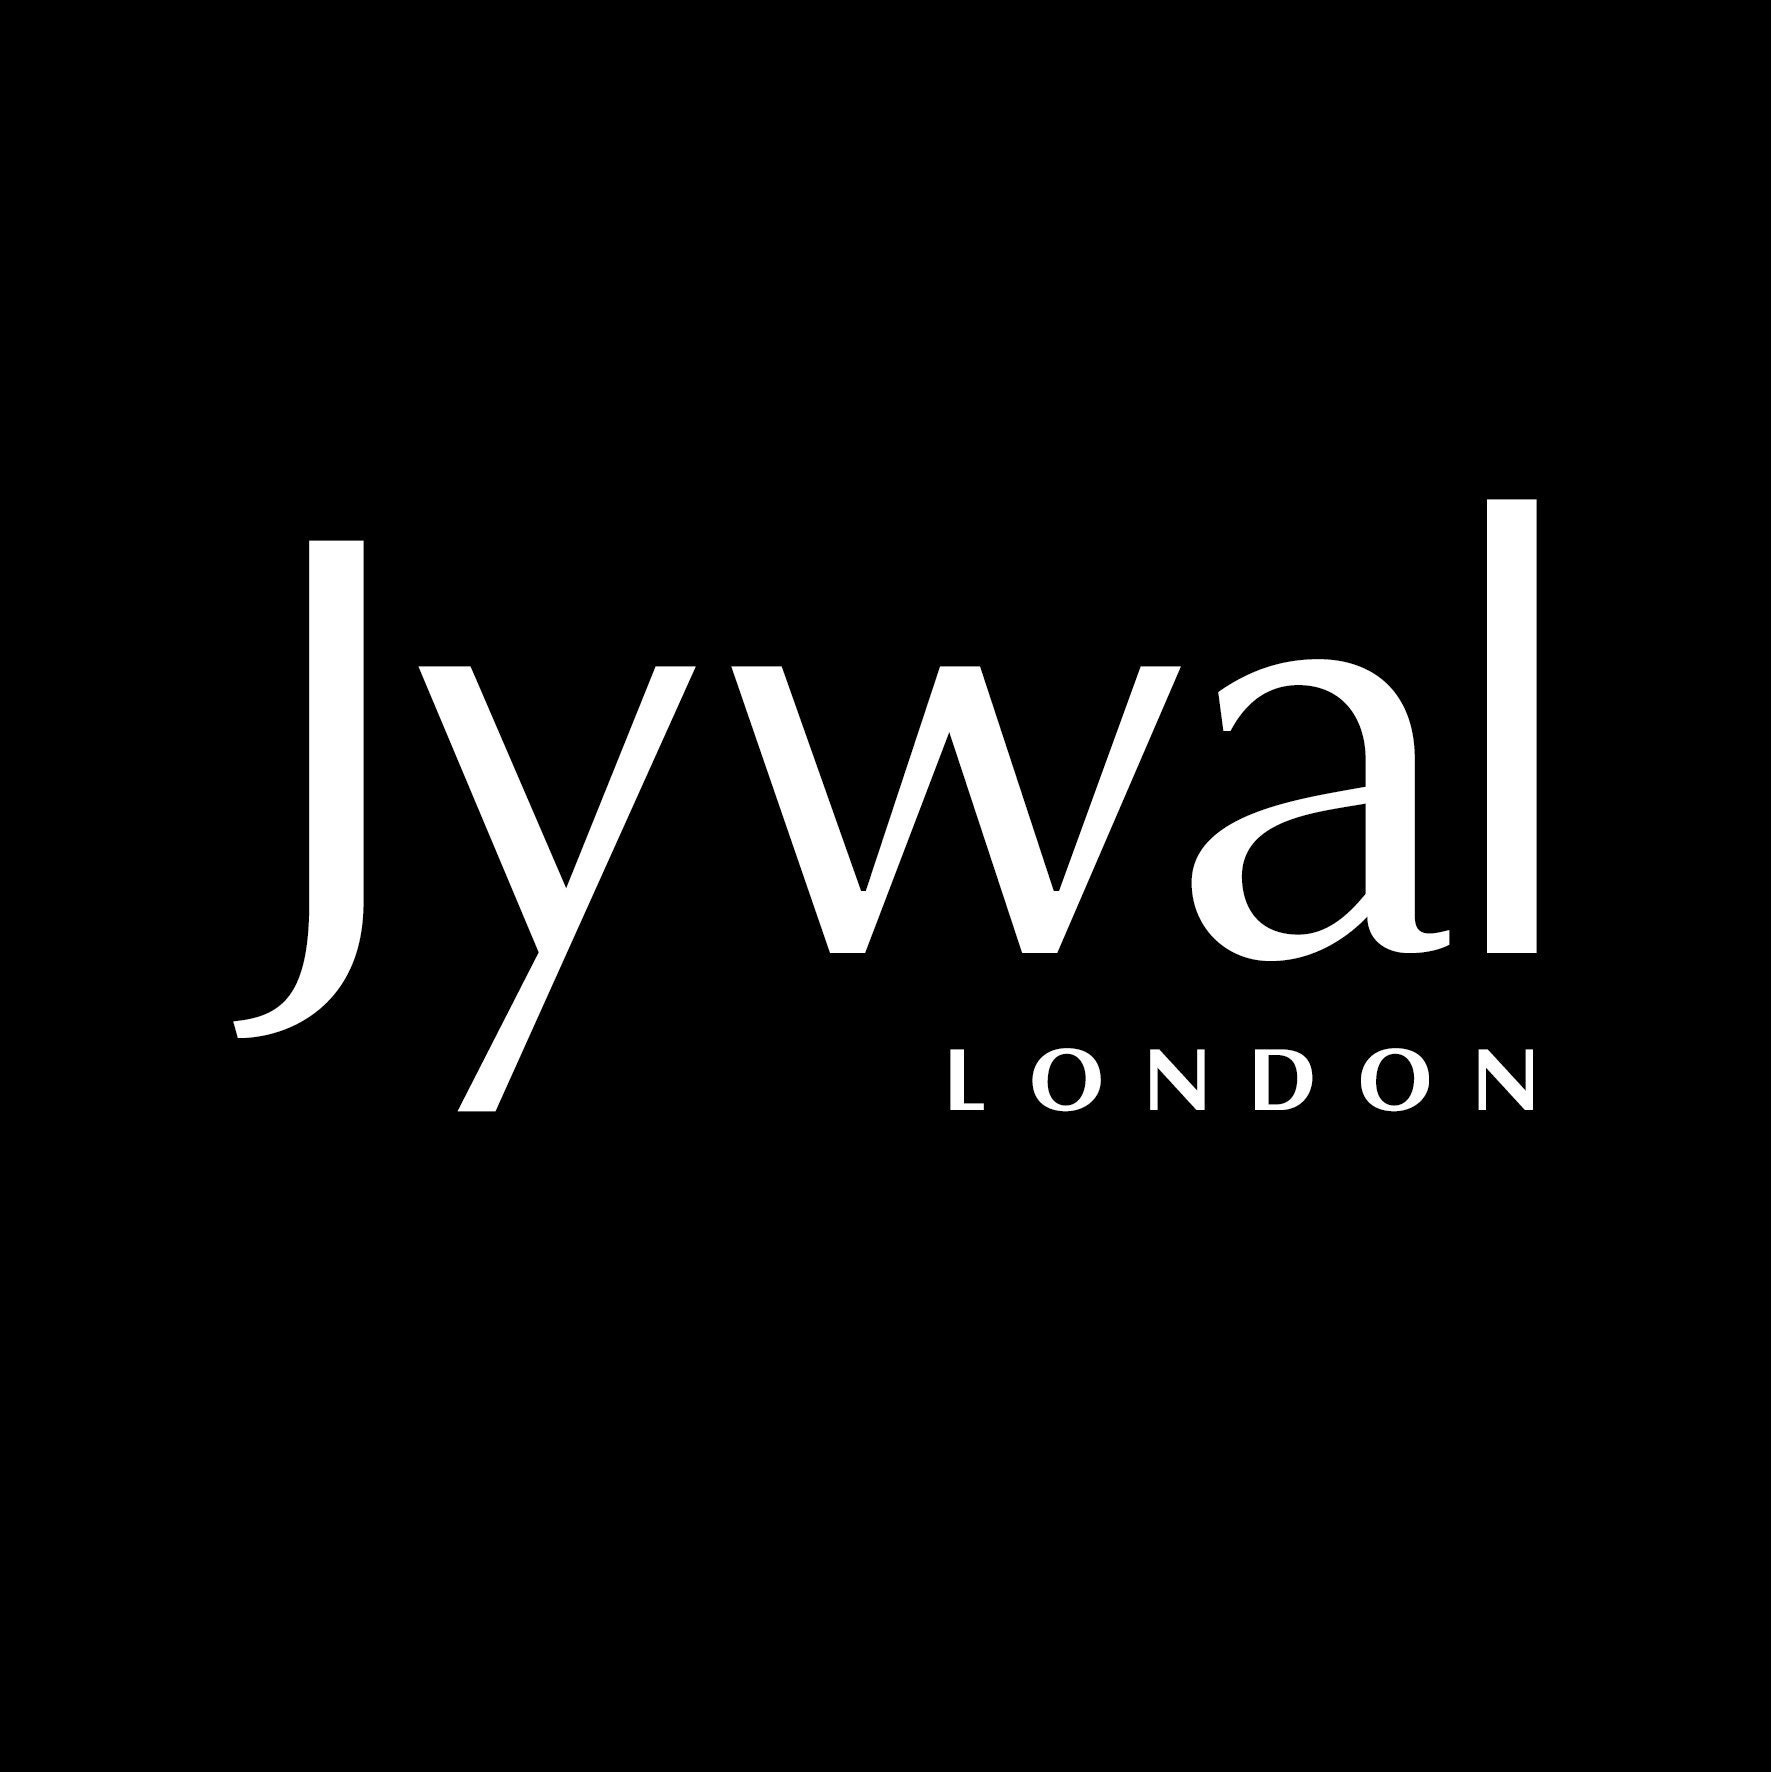 Fusion of Eastern and Western Hand Embellished Dresses von Jywal